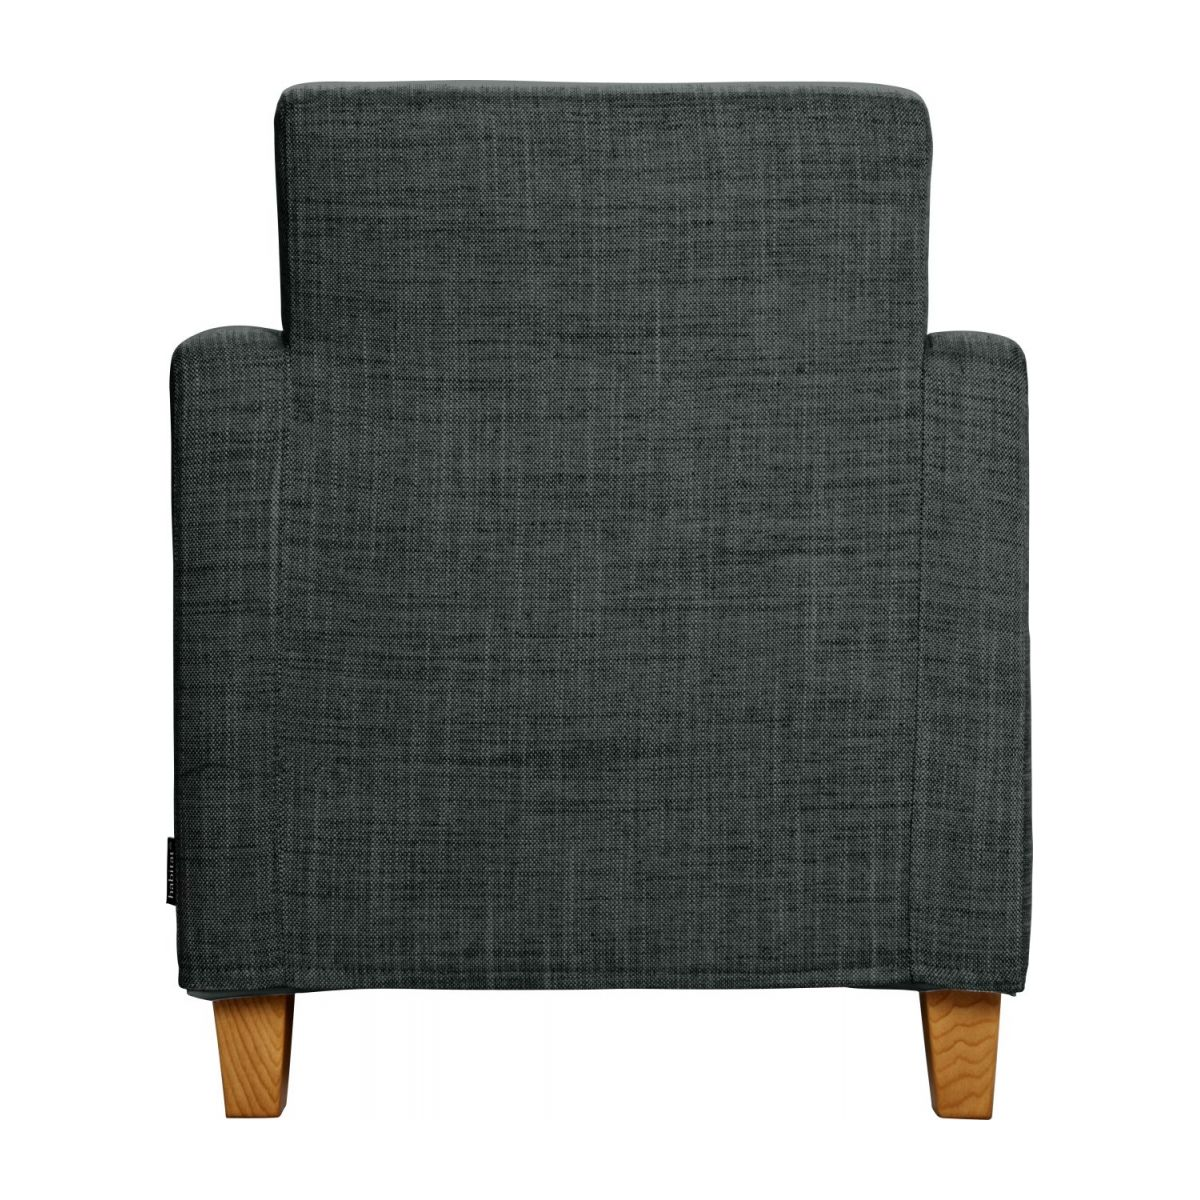 Fabric armchair n°5